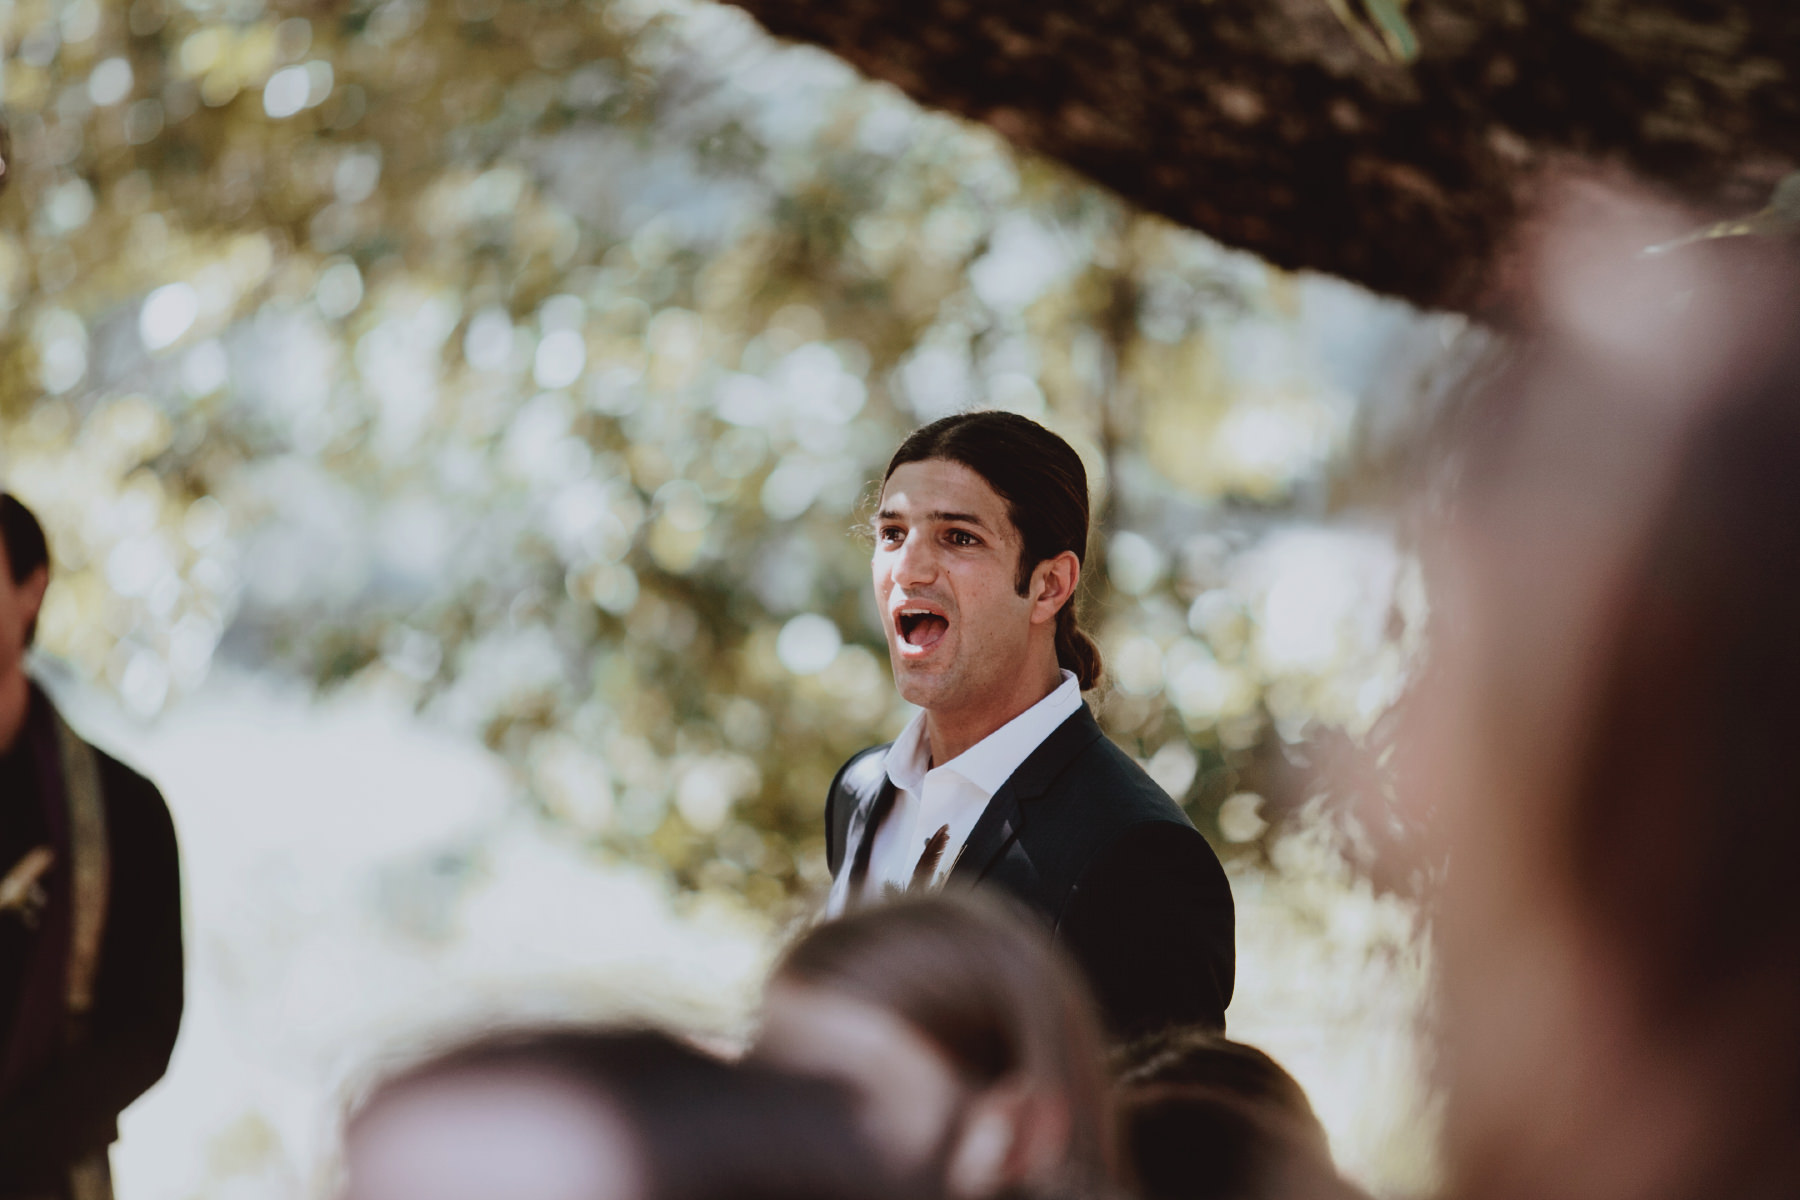 Grooms shocked reaction seeing his bride come down the aisle at Baileys Palomar Resort